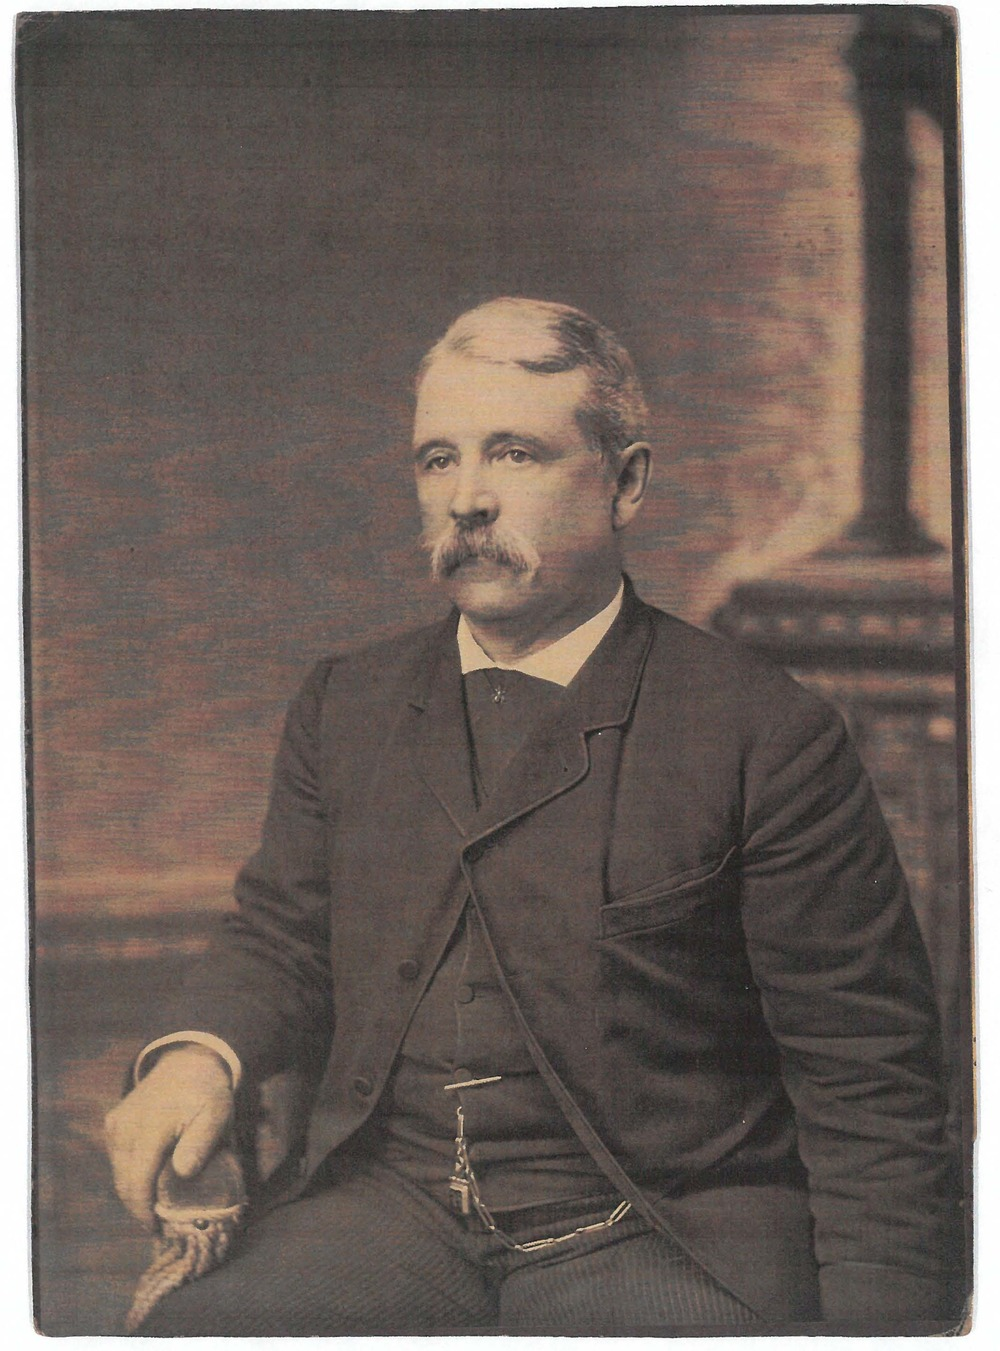 Charles B. Hazeltine, the original owner of 6 Union Park.